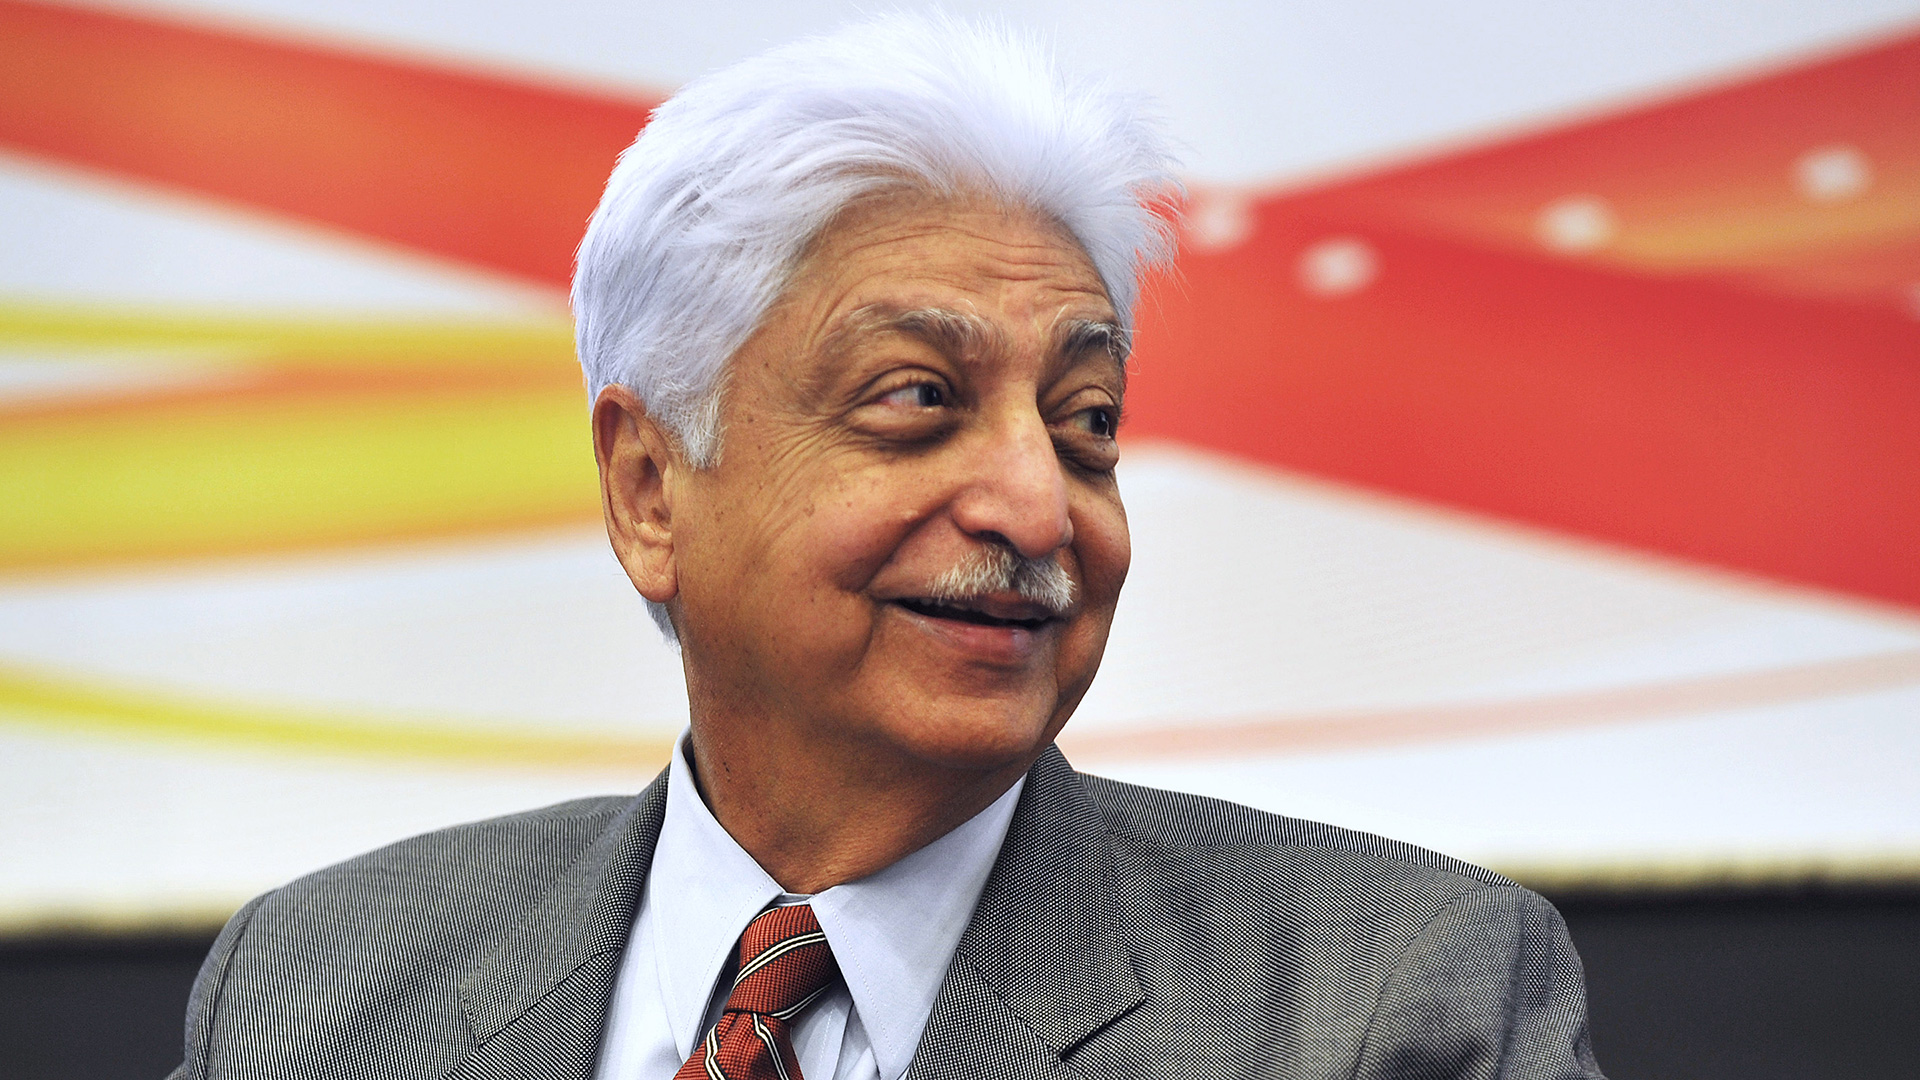 azim premji Education alone may not end gender disparity in india by anurag behar, livemint, march 2018 one of the hundreds of dusty small towns in north india, this one is not.